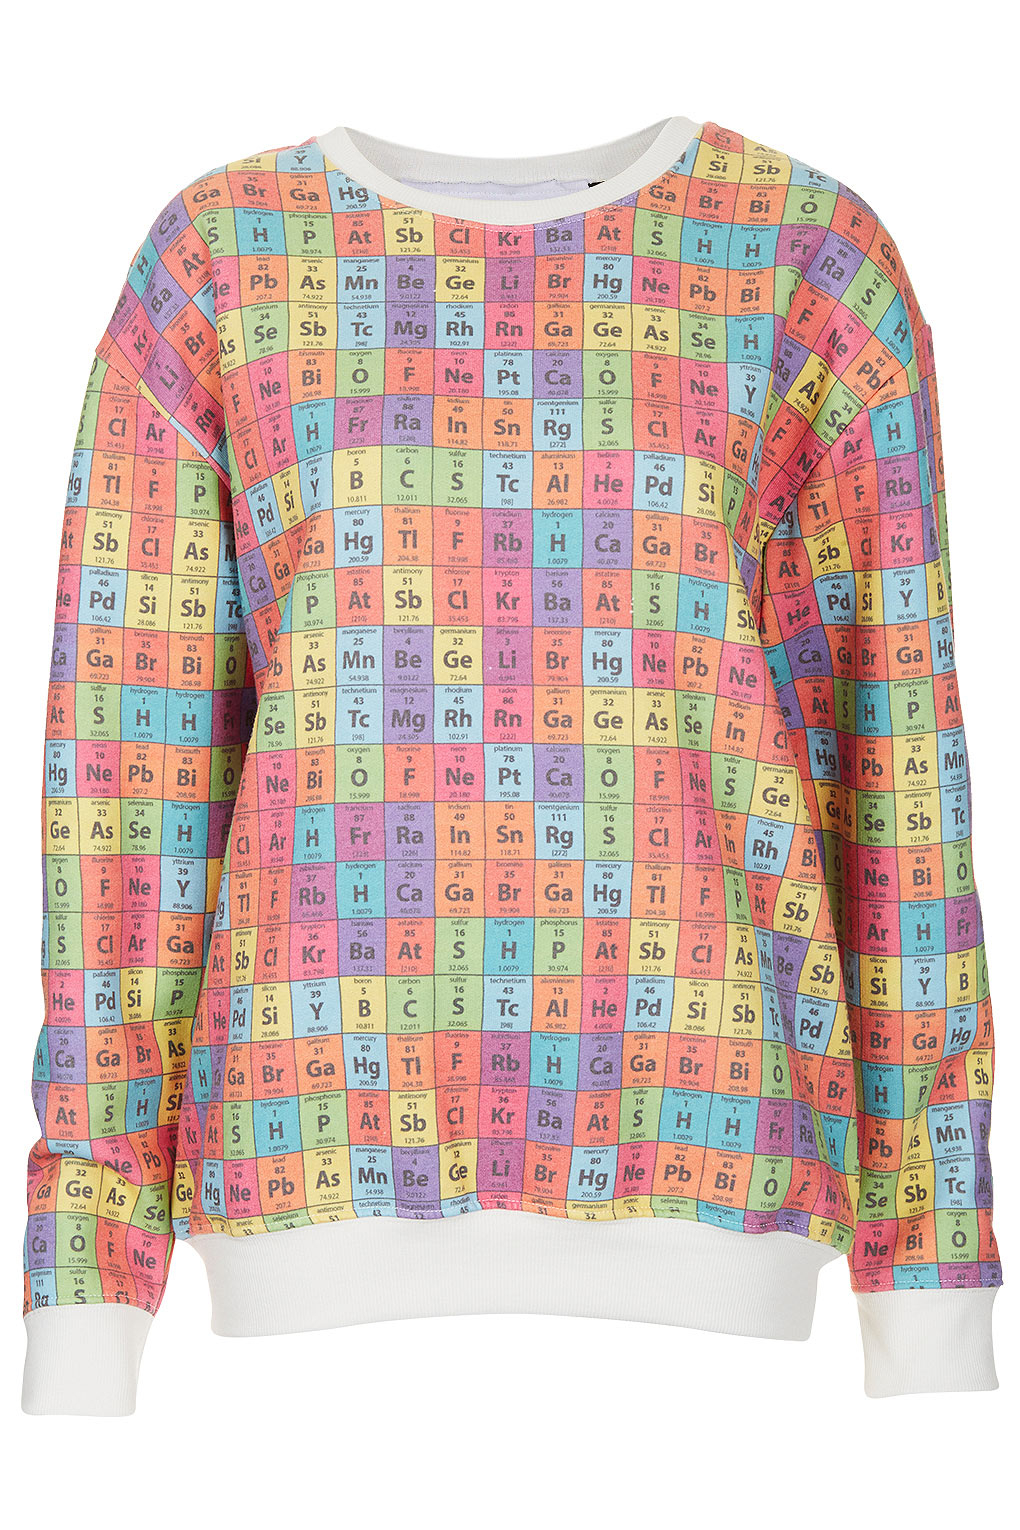 Domestic sluttery tee and cakes periodic table jumper tee and cakes periodic table sweatshirt is 35 from topshop and its already entertained me for hours when i opened my delivery the first element to gamestrikefo Choice Image